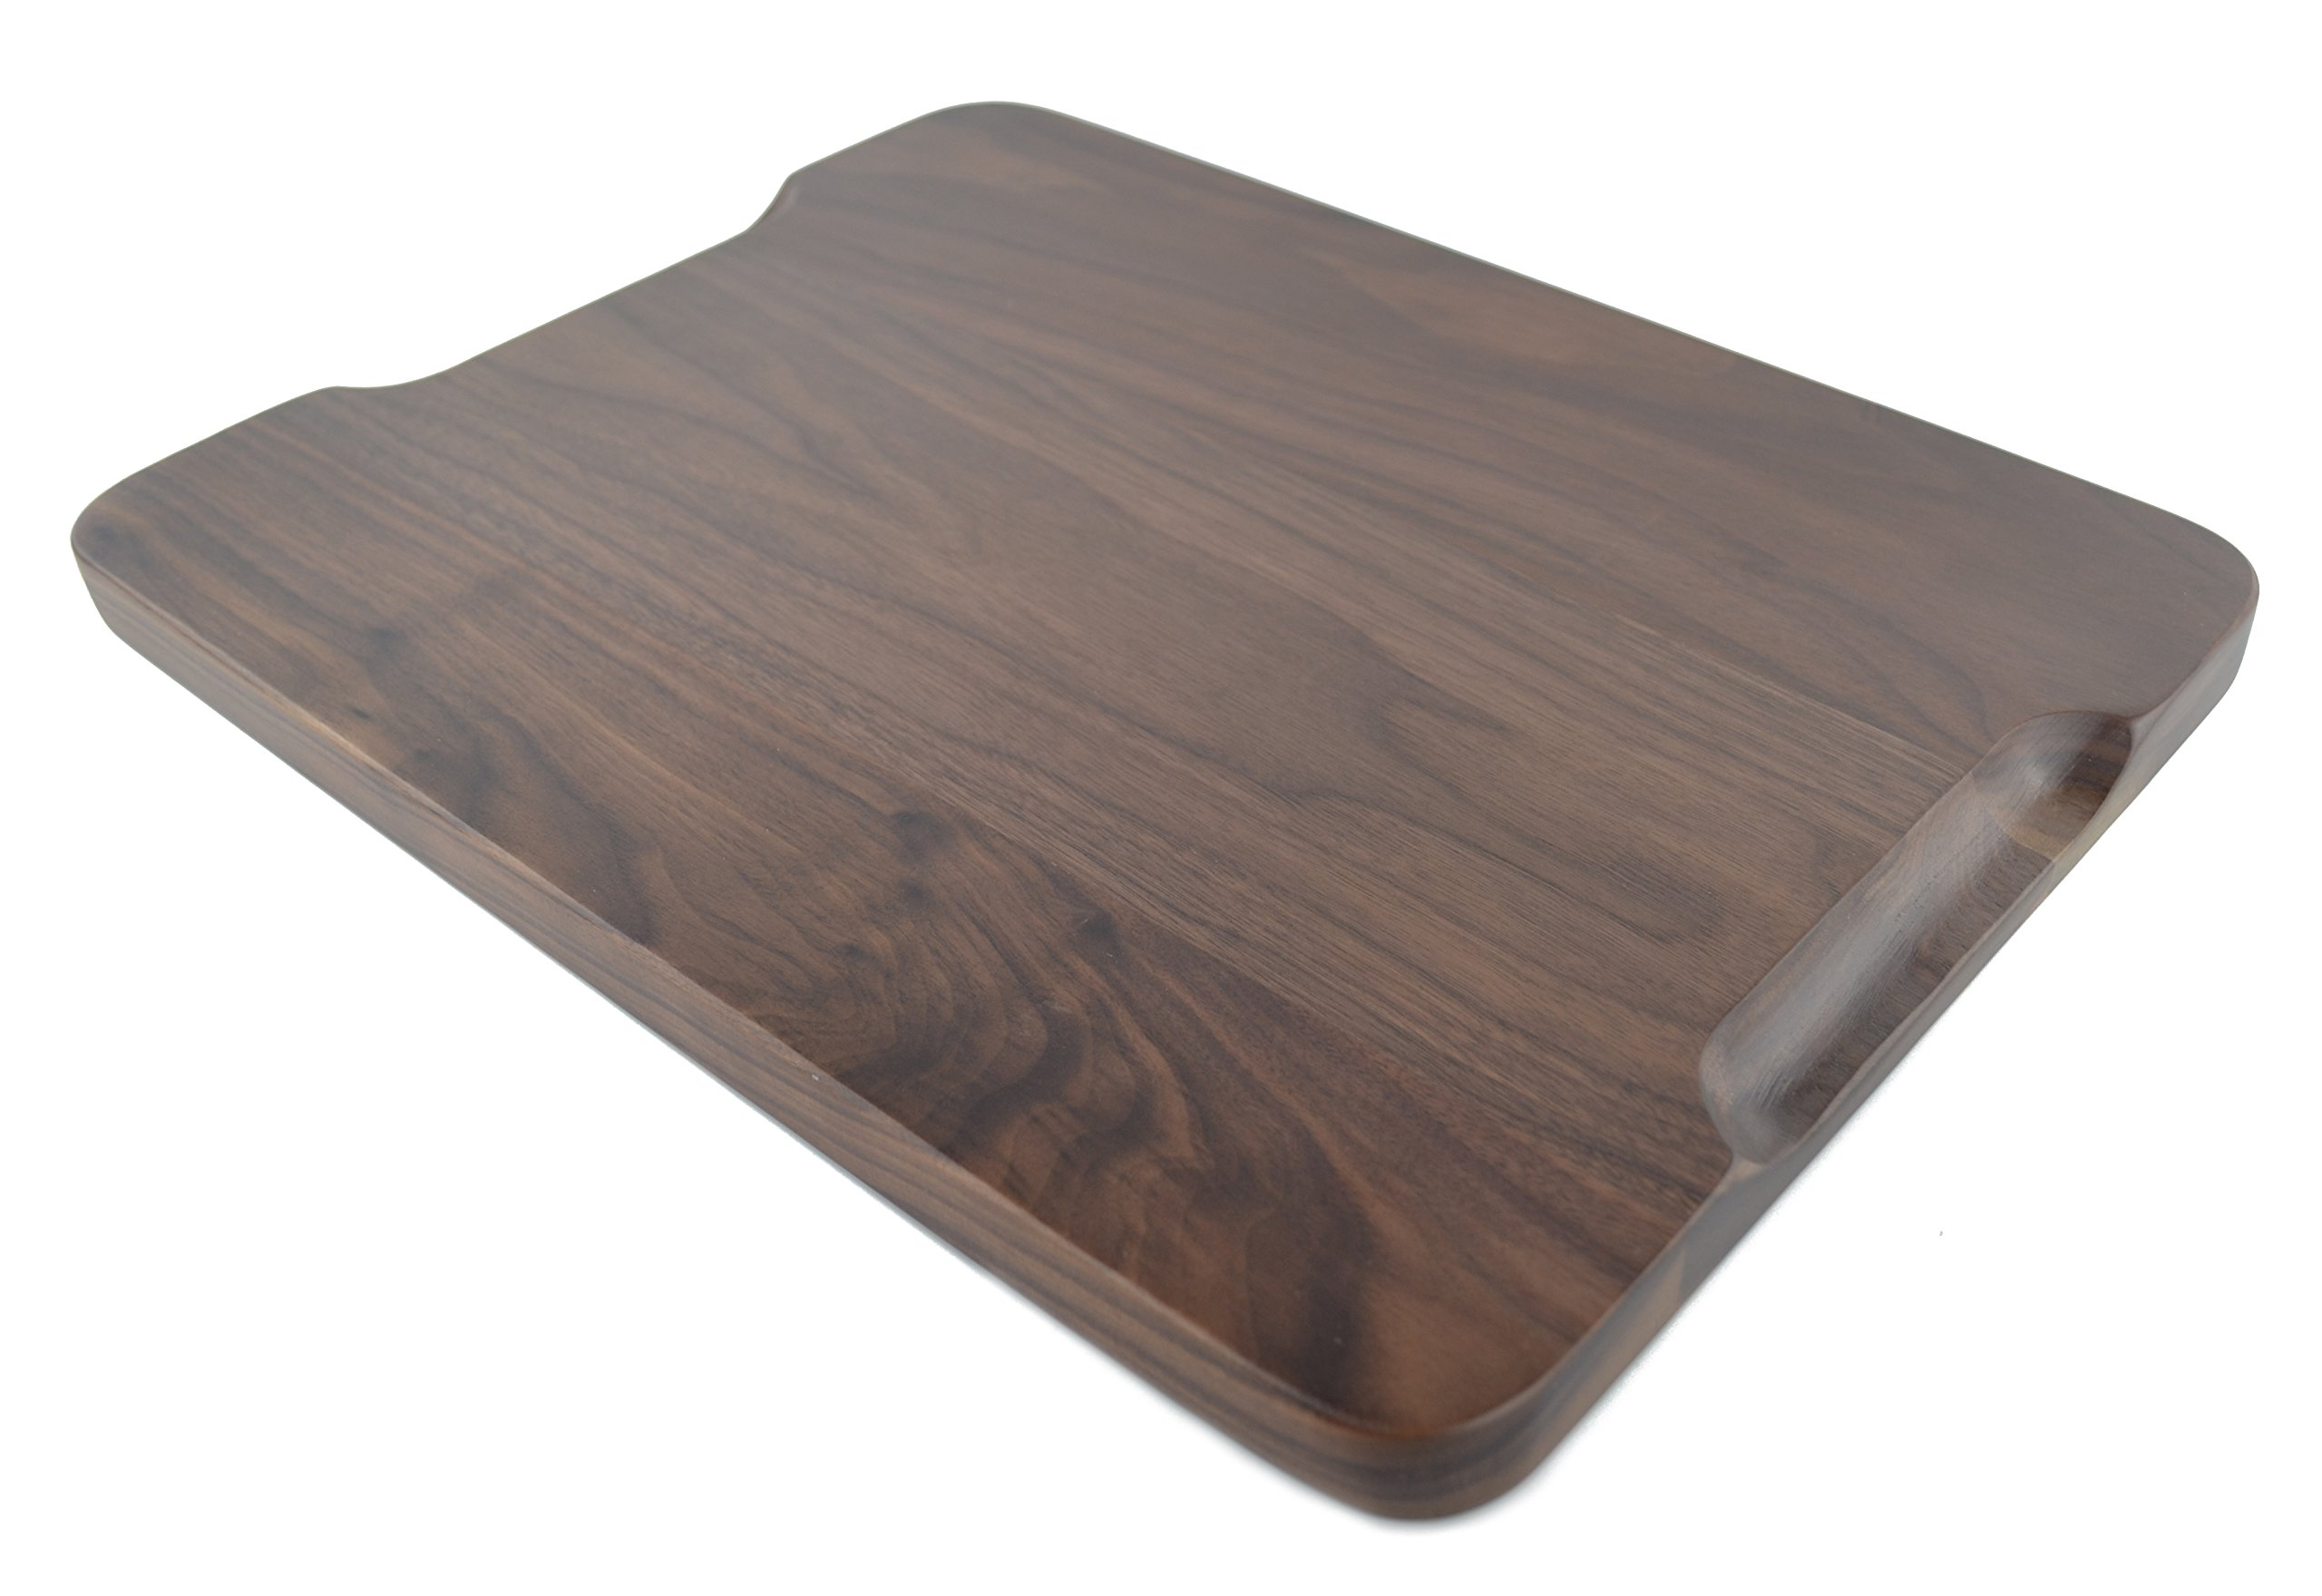 Samyo Black Walnut Solid Wood Rectangular Tableware Serving Tray Handcrafted Decorative Trays Food Tray Serving Platters with gripper for Coffee Wine Cocktail Fruit Meals (Large Size) by SAMYO (Image #4)